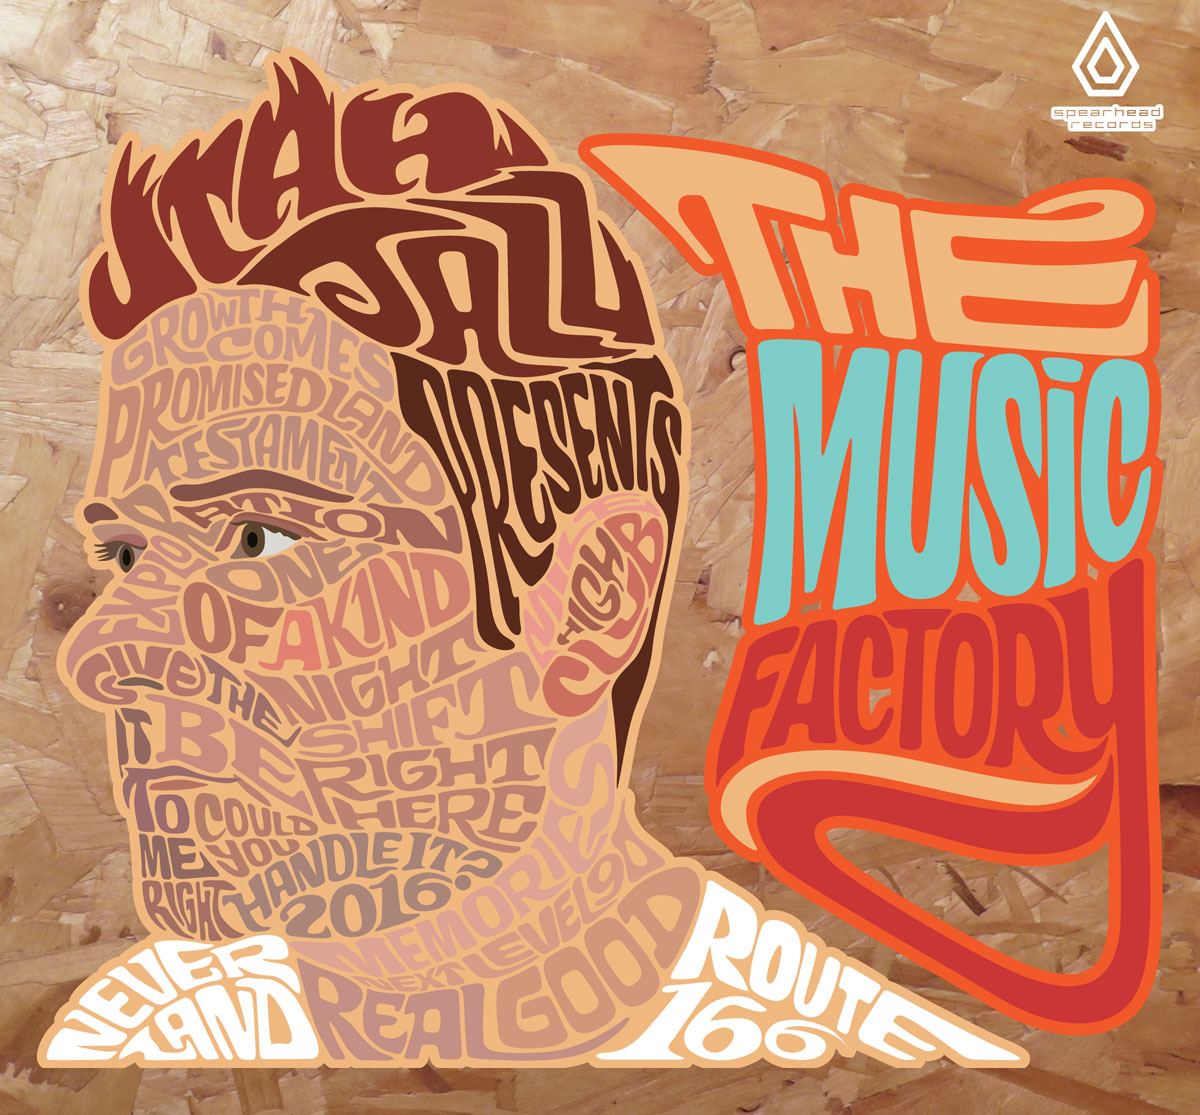 Studio Oscar - THE MUSIC FACTORY LP